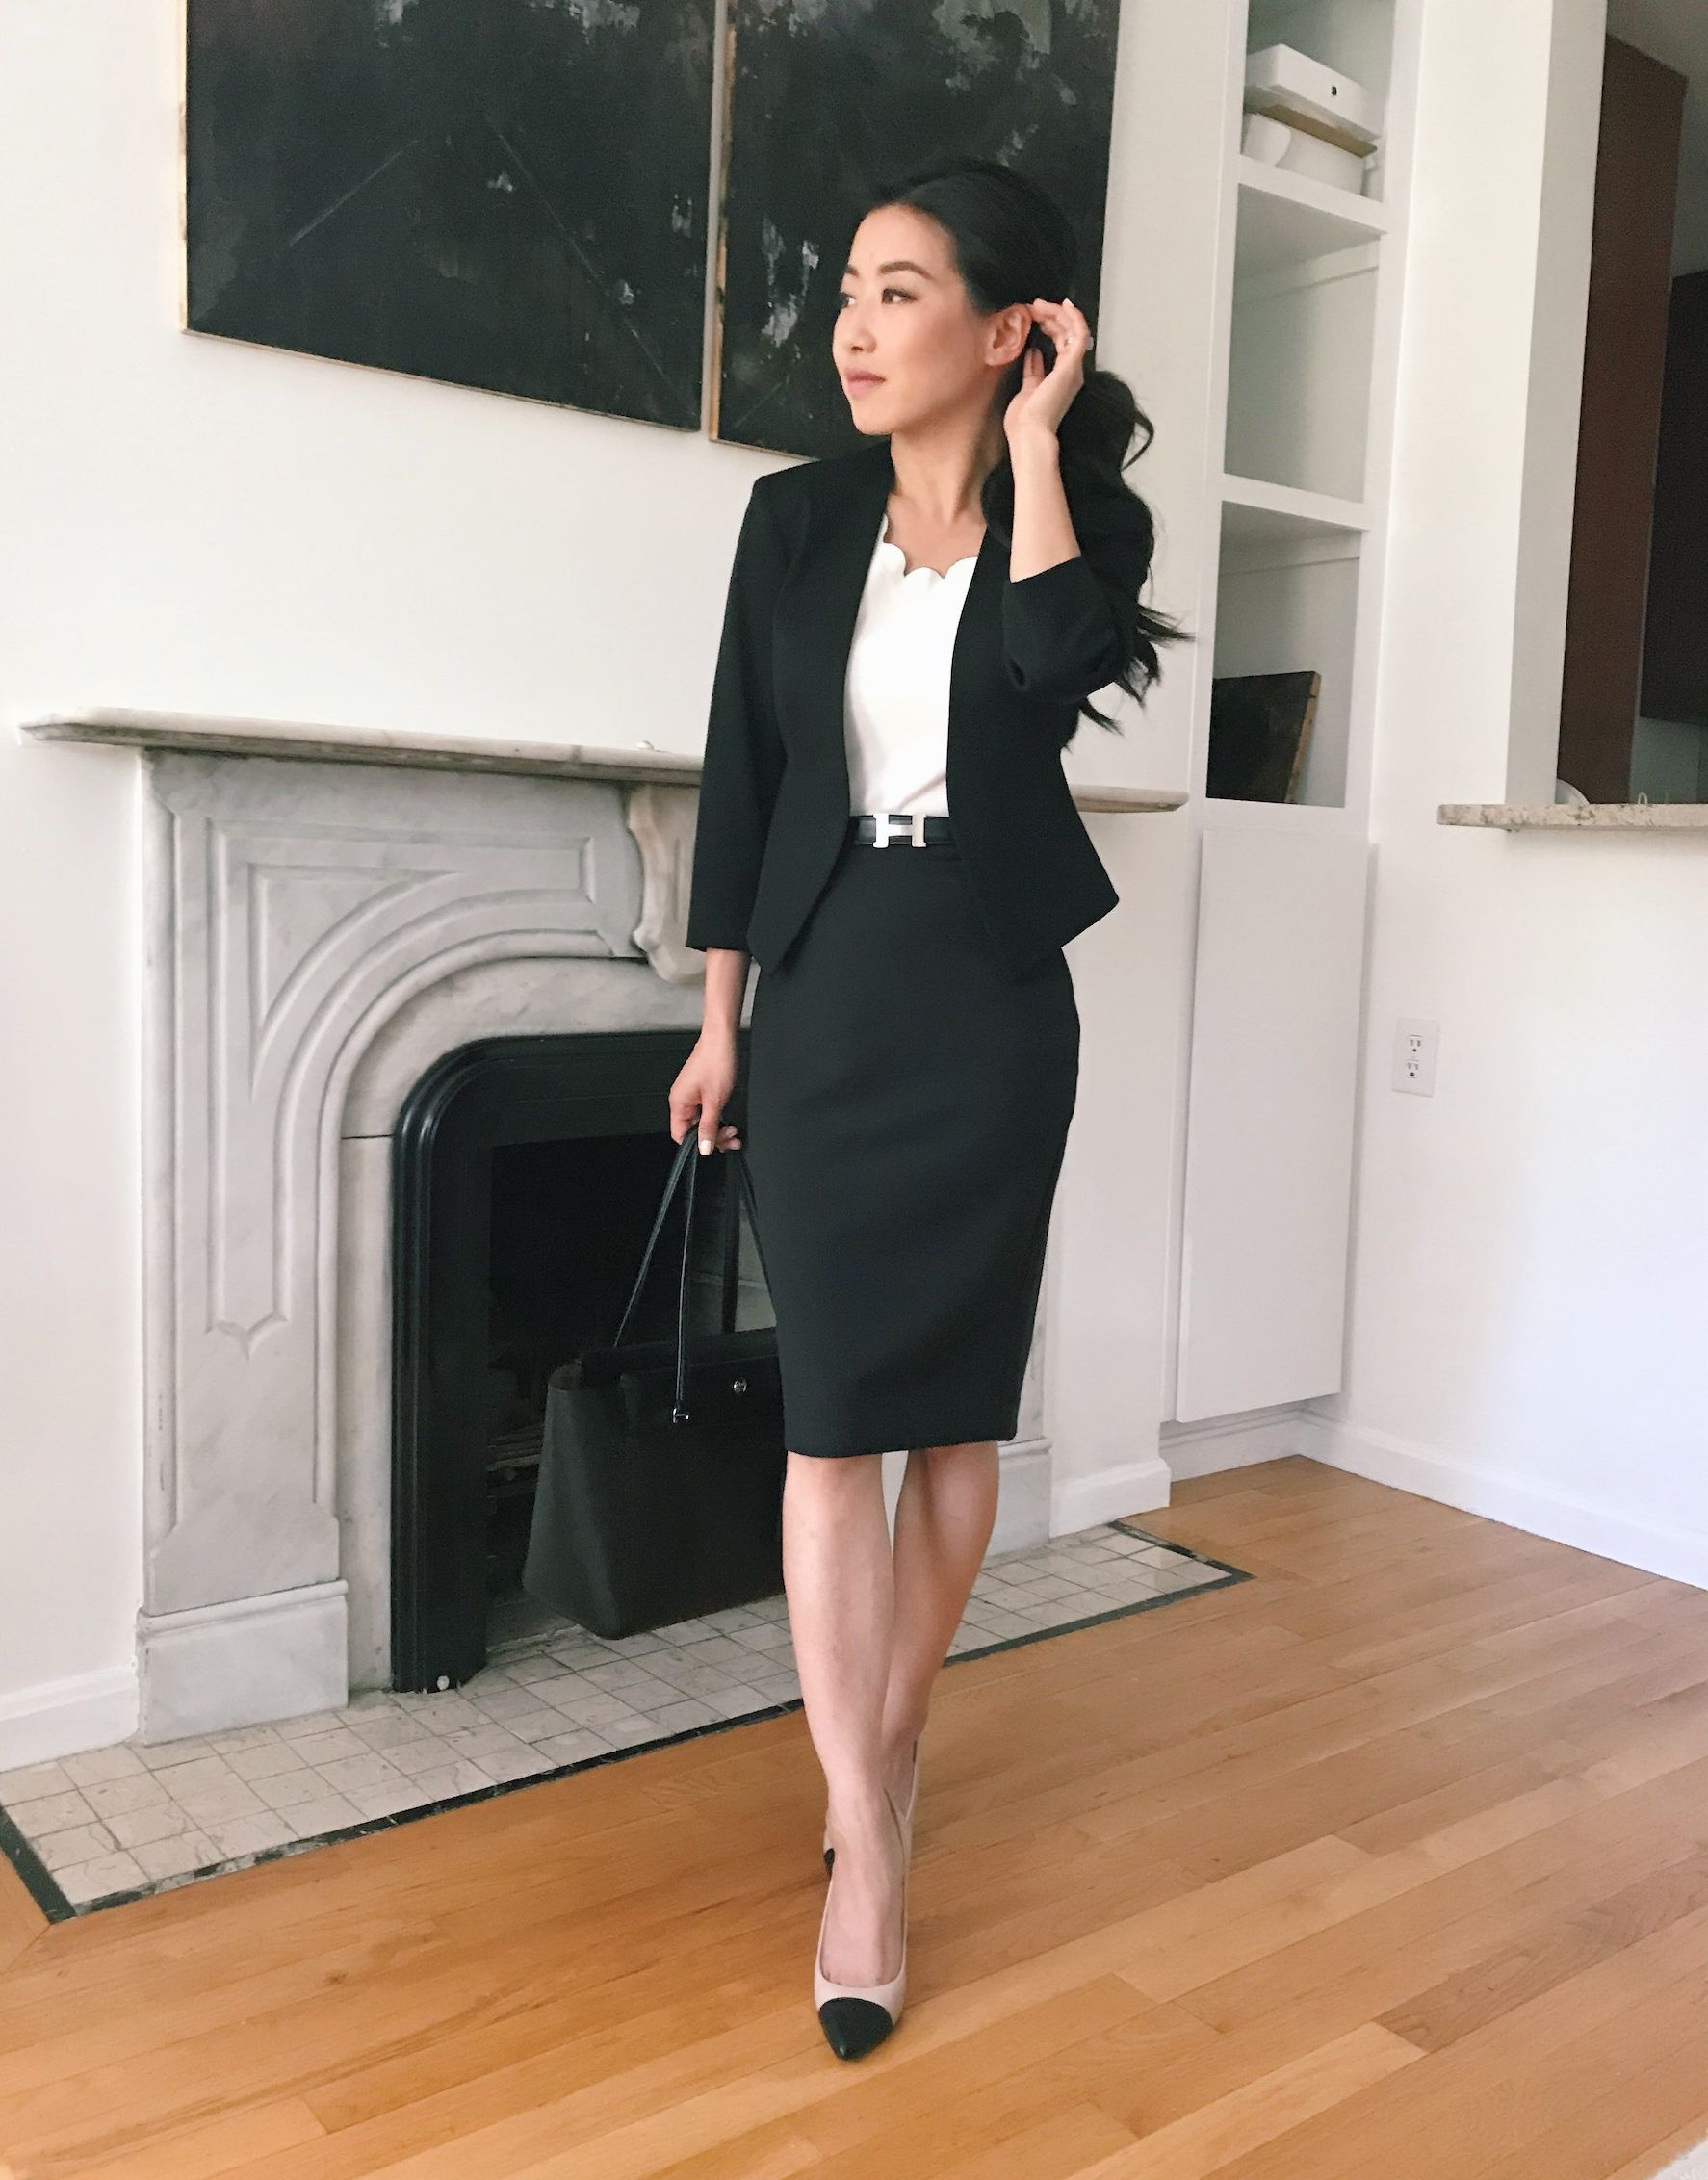 Stylish Black Pencil Skirt Outfit Ideas Extra Petite Pencil Skirt Outfits Black Pencil Skirt Outfit Black Skirt Outfits [ 2264 x 1774 Pixel ]